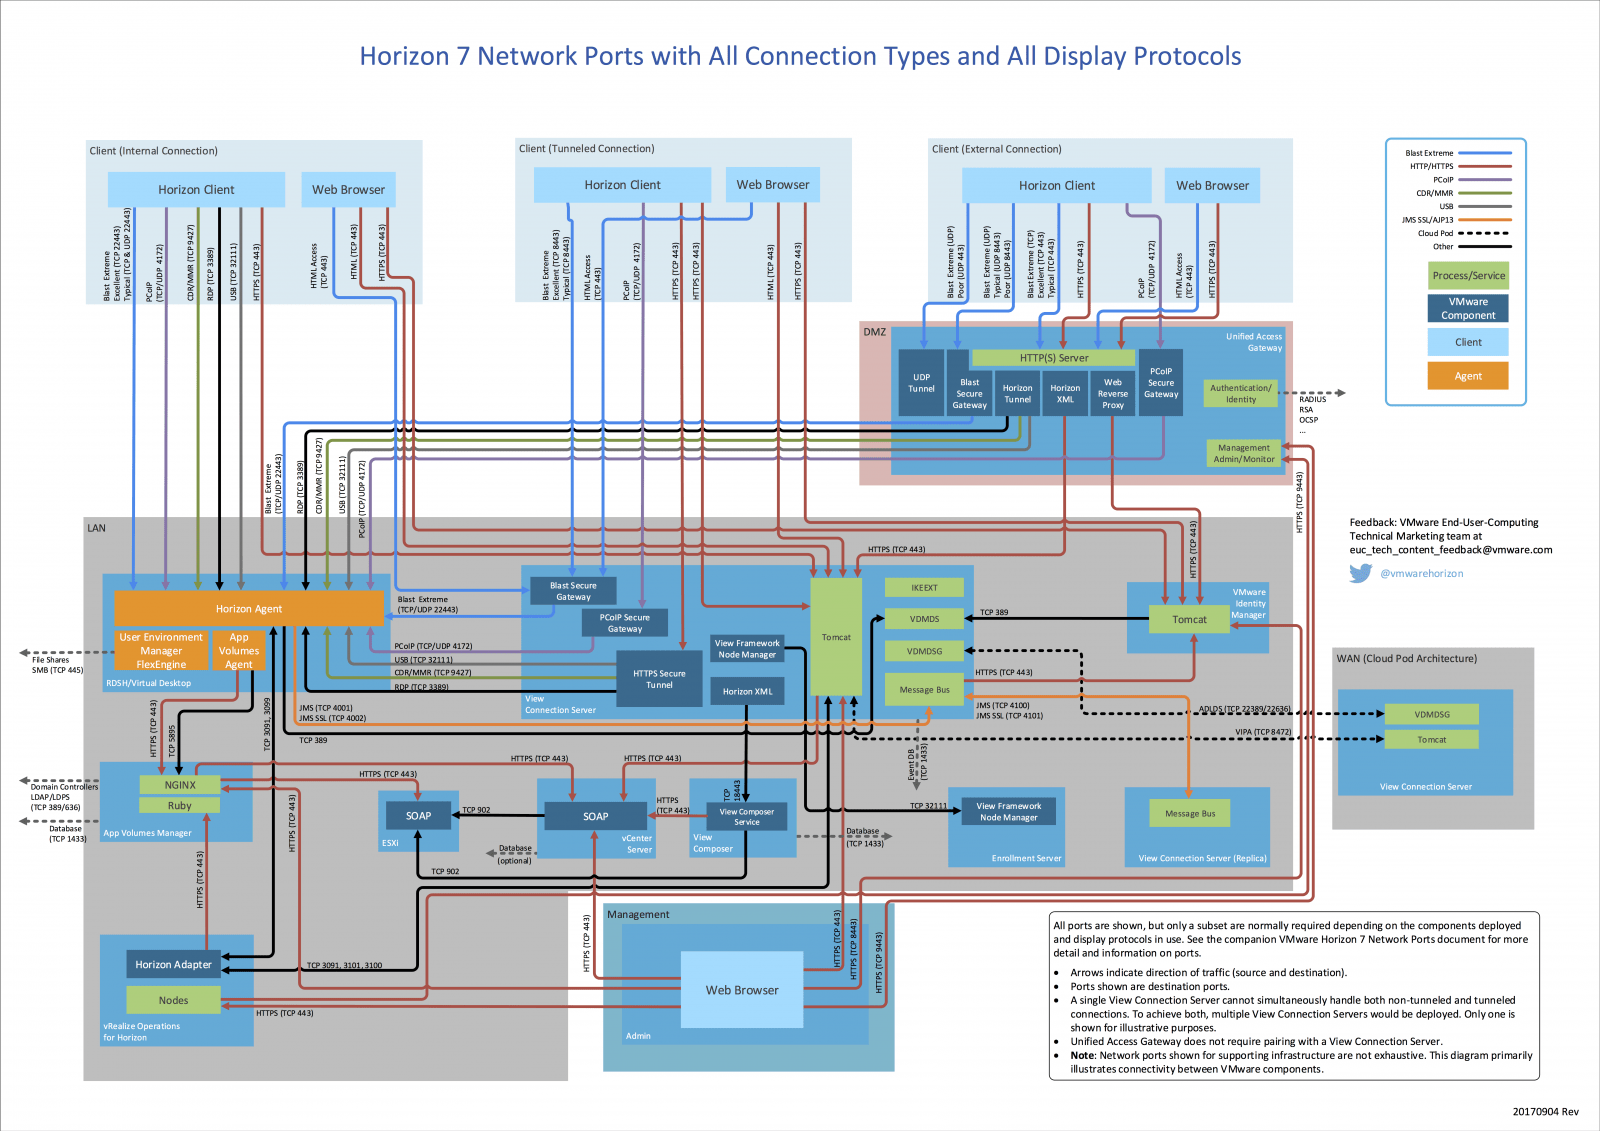 vmware virtual server diagram fan light switch wiring how to wire multiple switches agnitum network ports in horizon 7